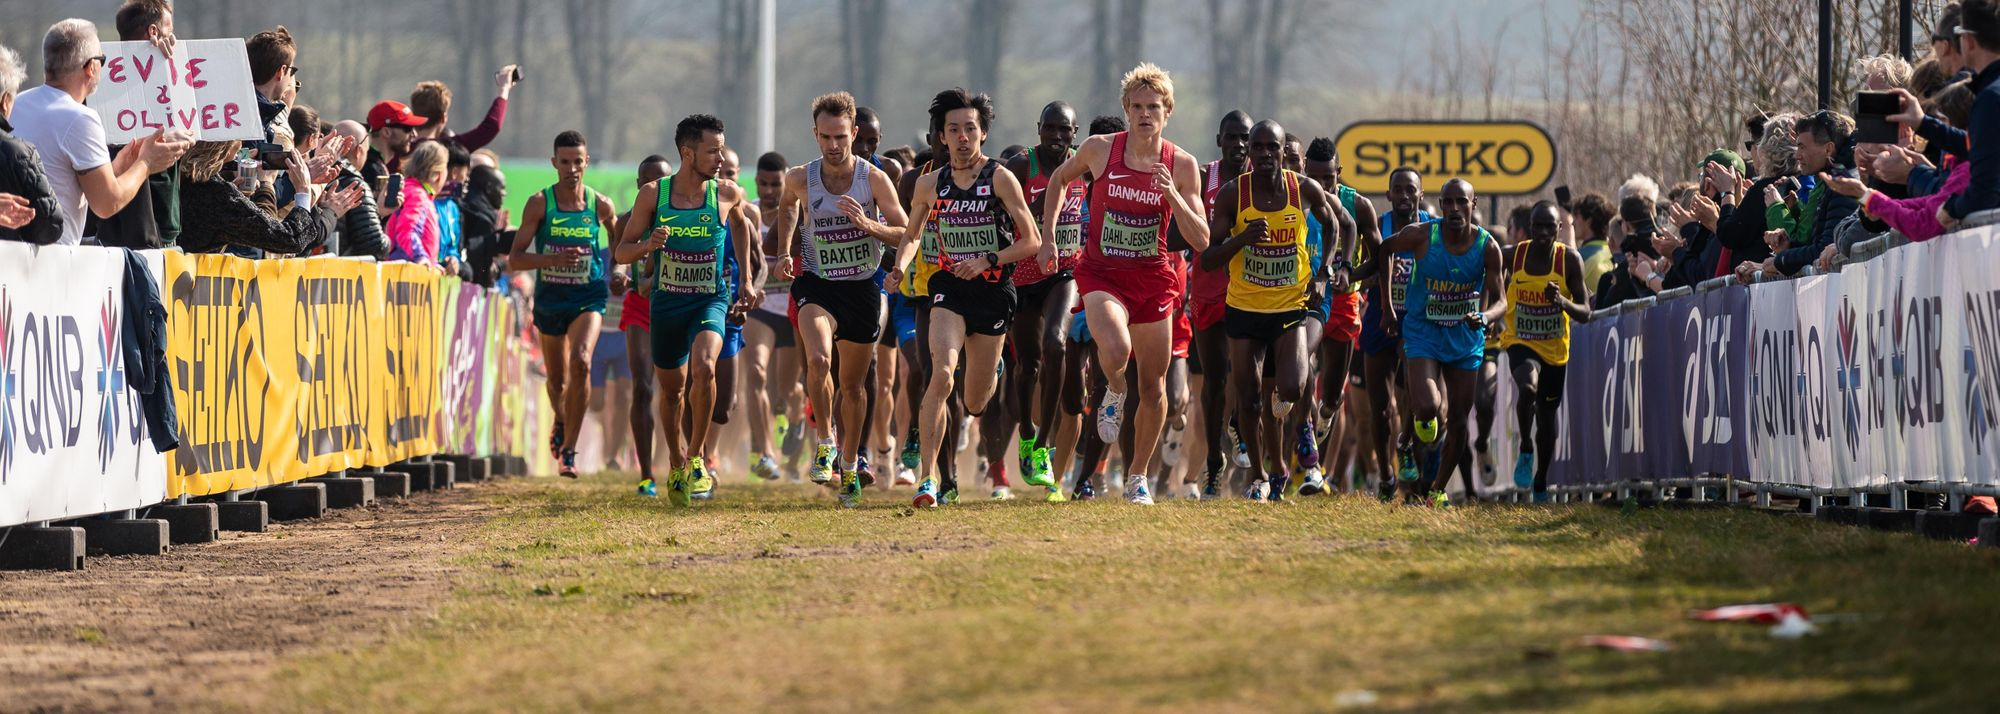 In 300 days' time, the world's best distance athletes will descend on New South Wales in Australia for the World Athletics Cross Country Championships Bathurst 2021 on 20 March.